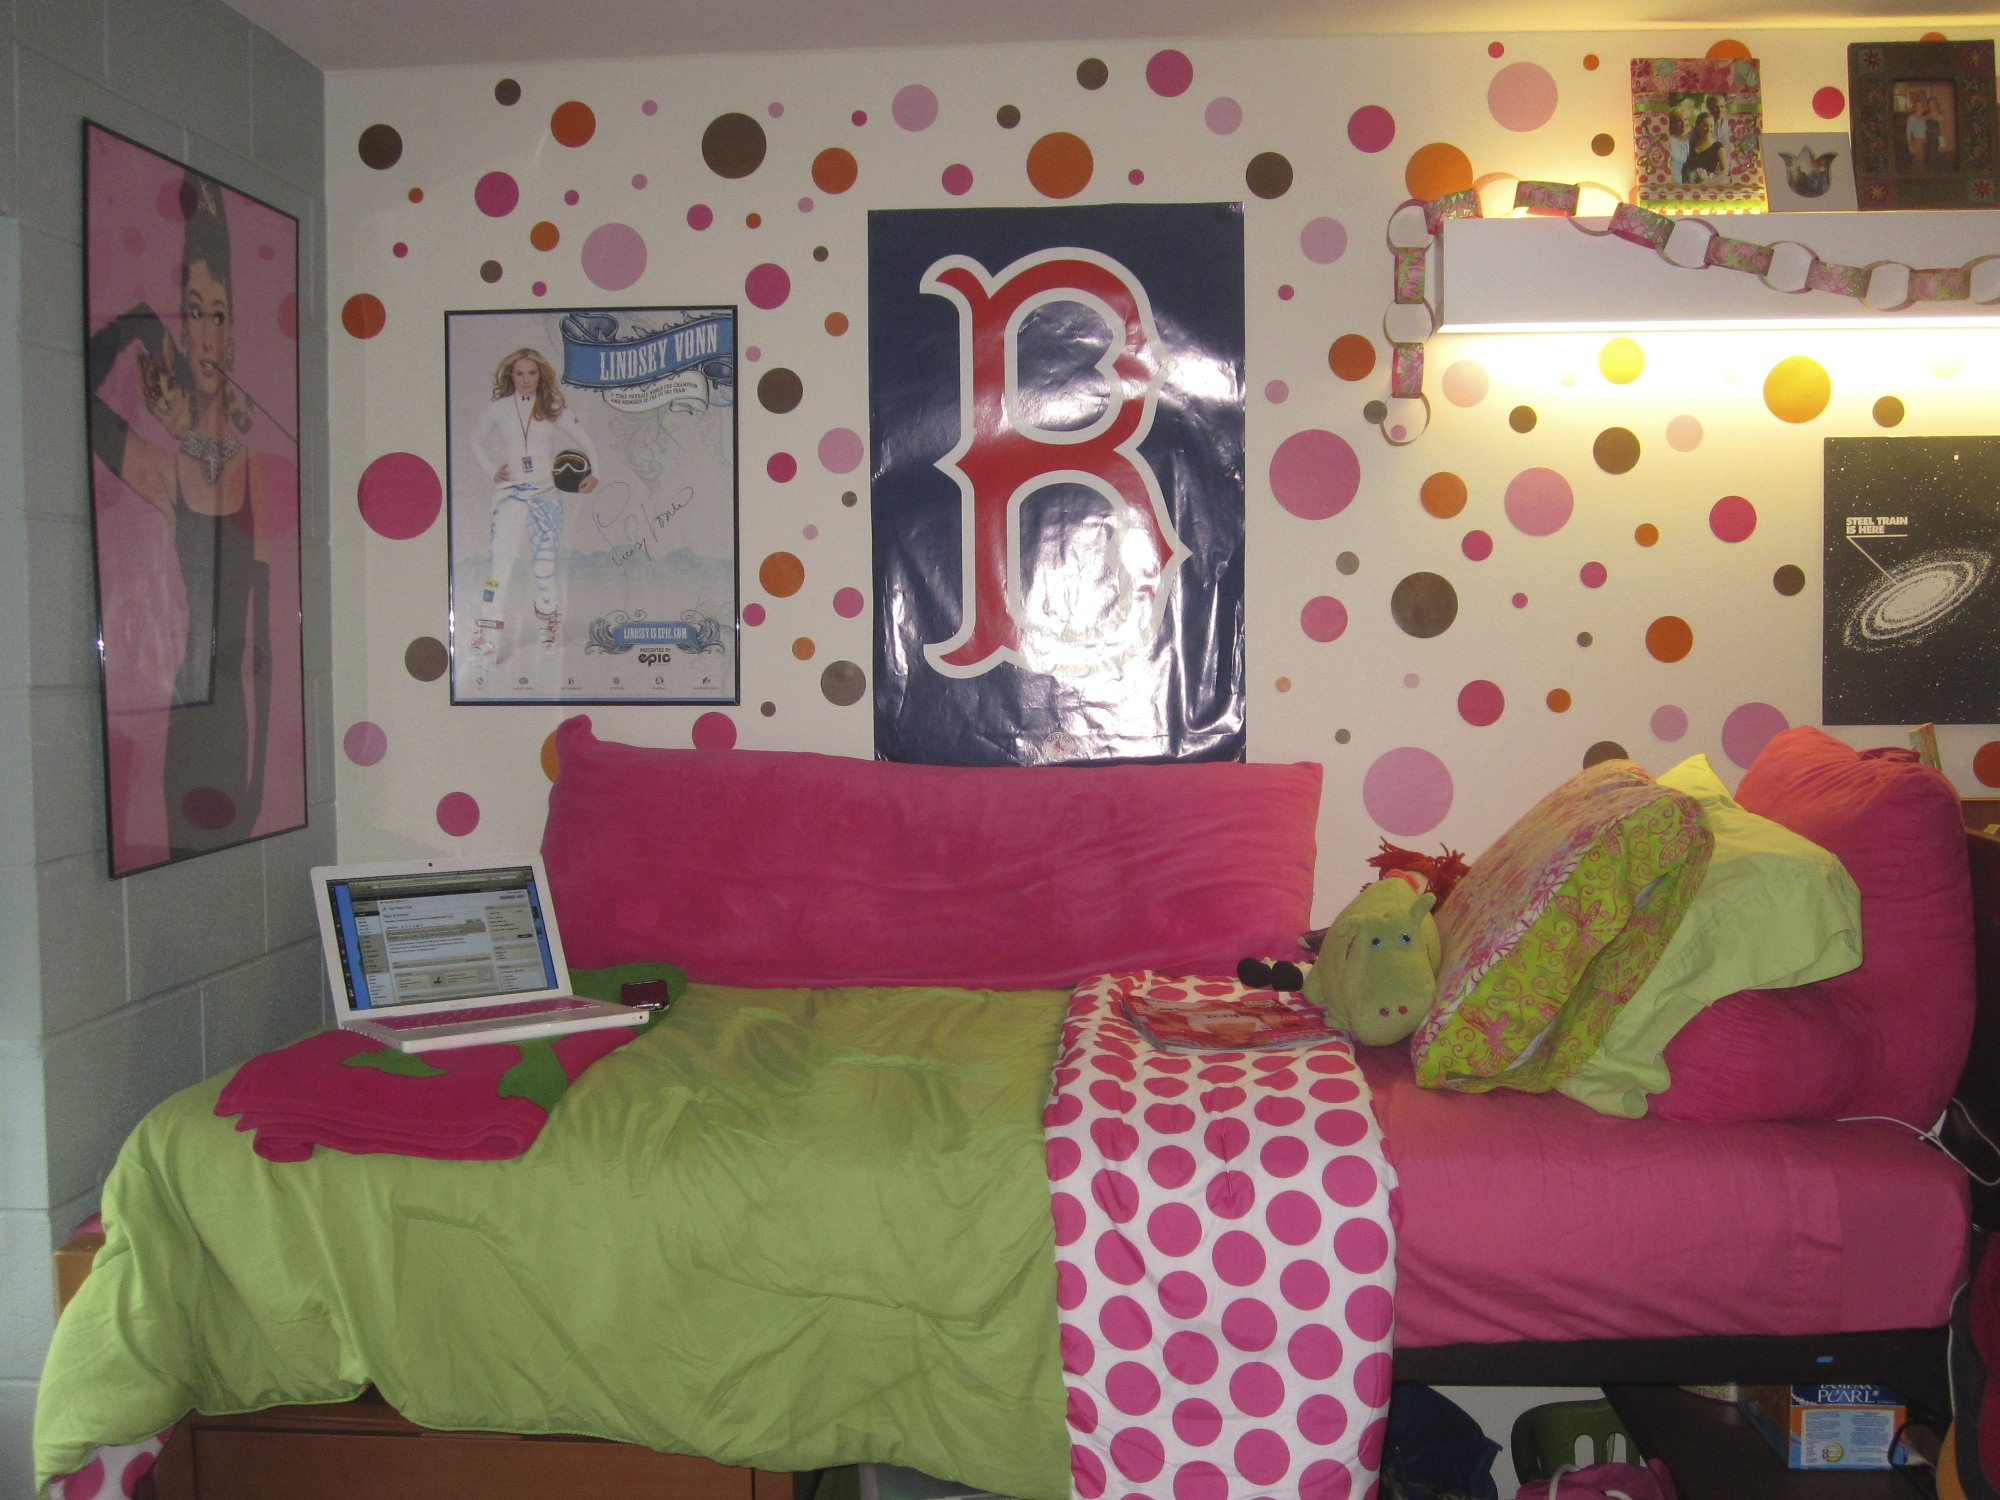 Preppy Dorm Room Tour